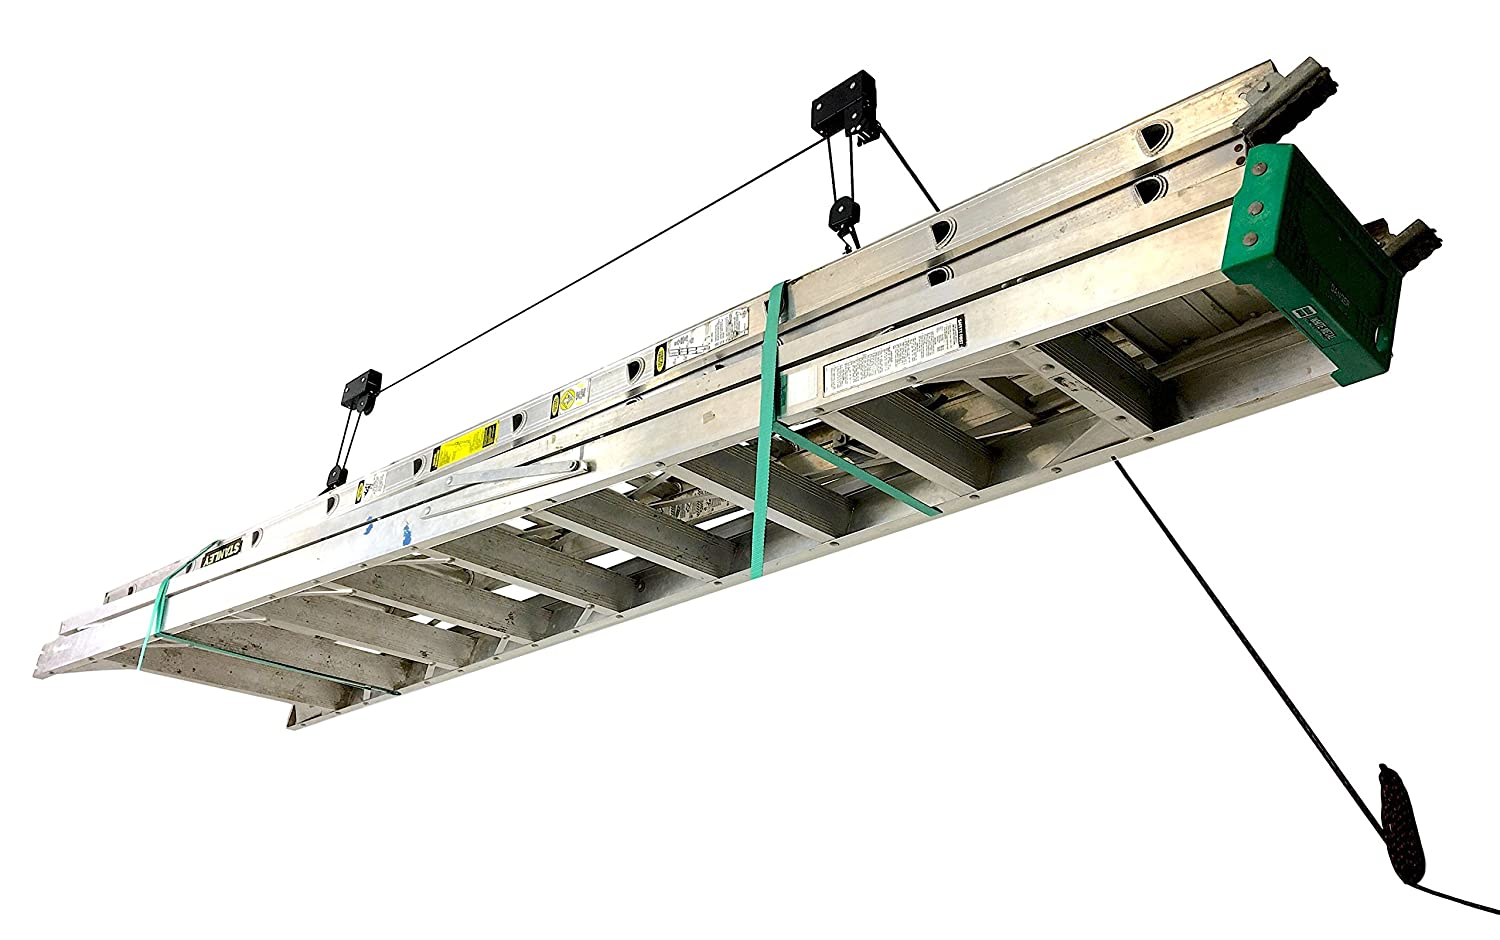 20043108 19.5 Pitch Length Continental ContiTech 195L050 Positive Drive Trapezoidal Tooth Profile Belt 0.375 Pitch 0.5 Wide 19.5 Pitch Length 0.14 Height 0.375 Pitch 0.5 Wide Veyance Technologies Inc 0.14 Height Light